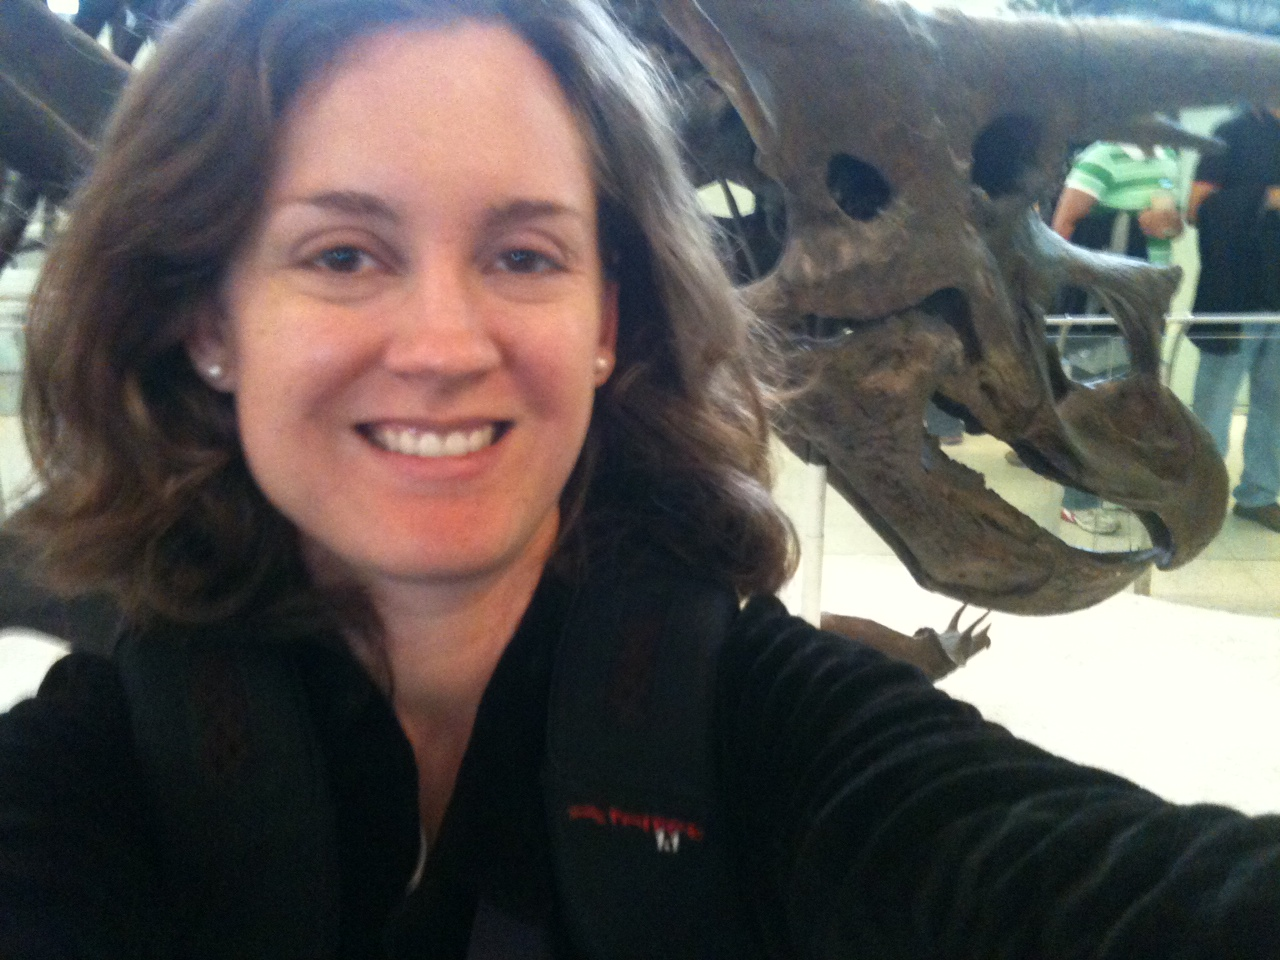 This image shows Professor Stovall with a dinosaur!